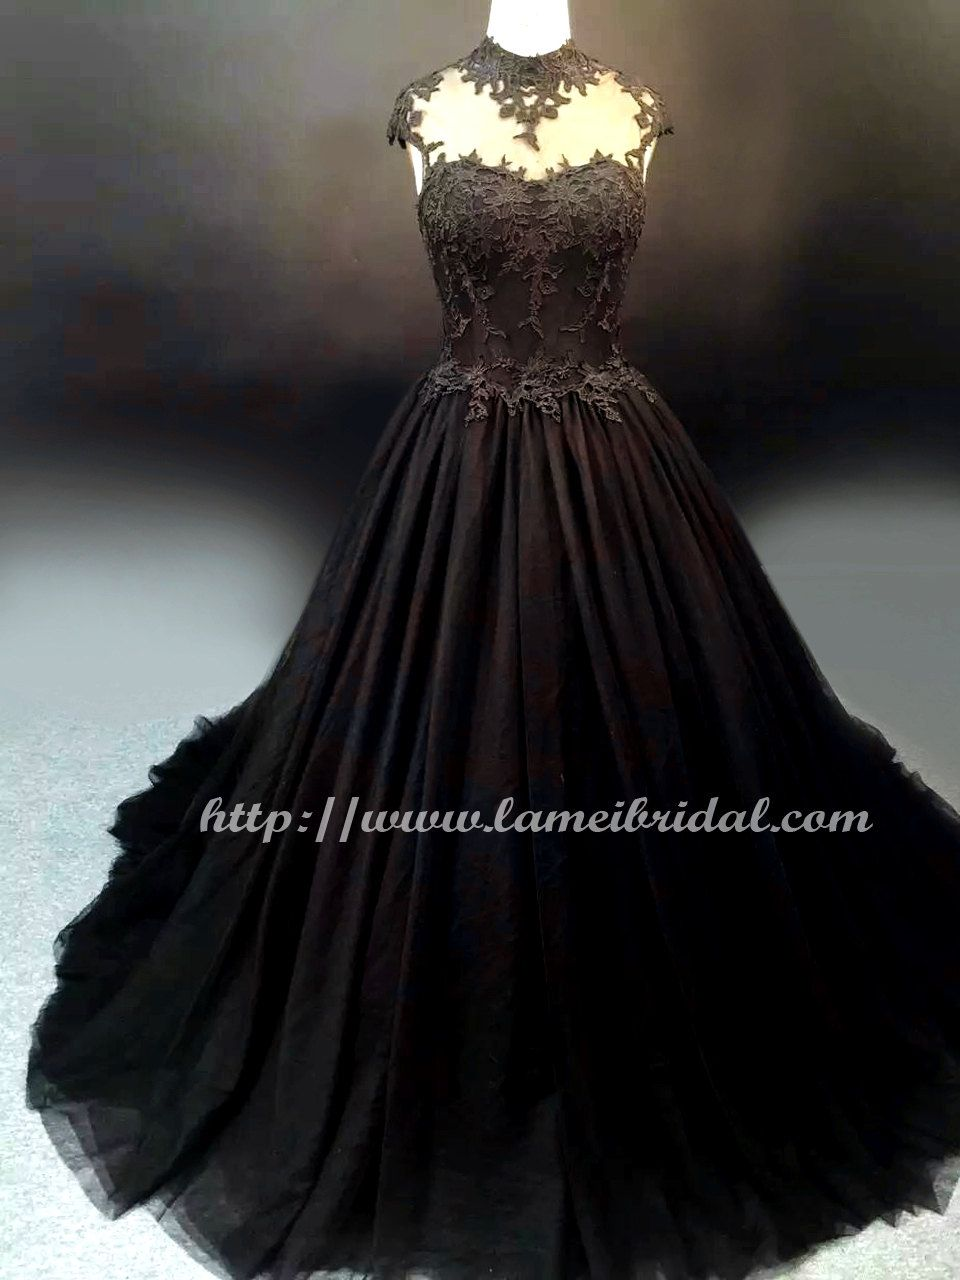 Gothic Style Black High Neck Wedding Bridal Dress Ball Gown Black Lace Ballgown